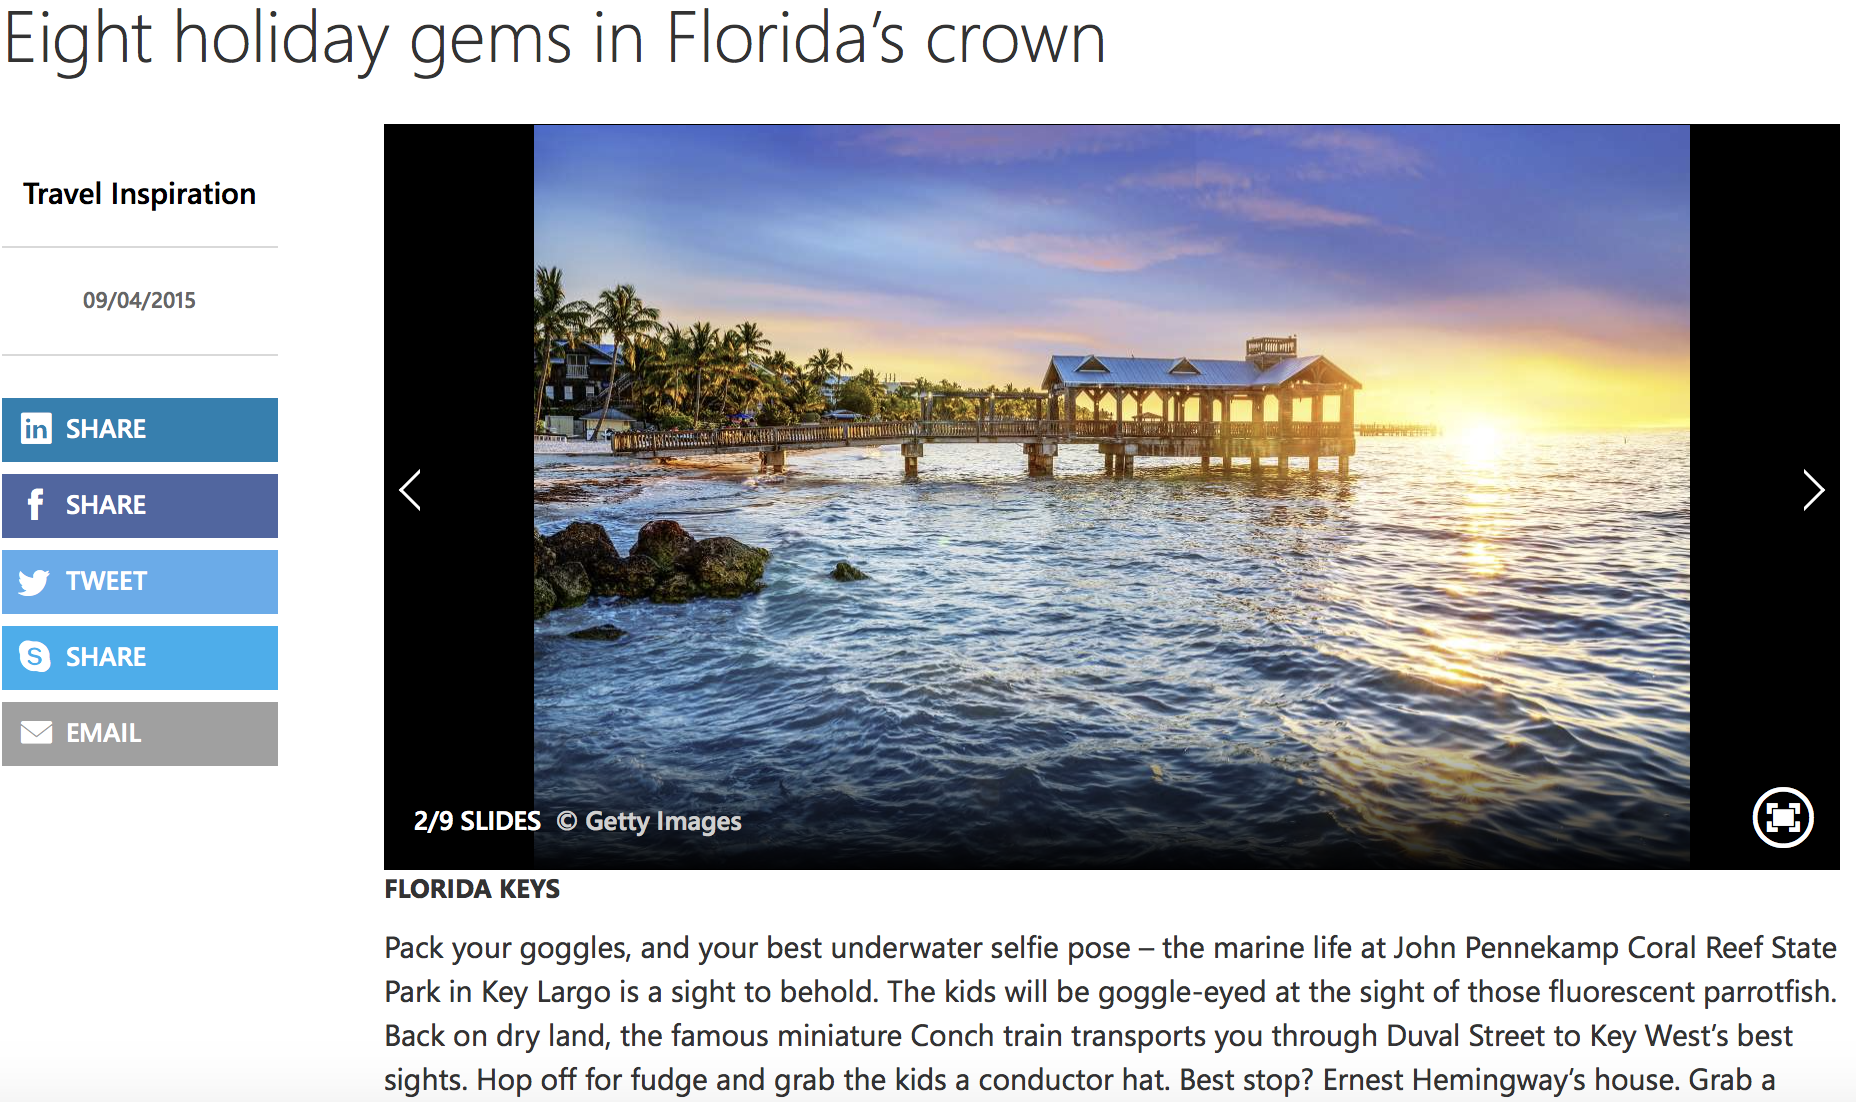 8 Florida gems with Virgin Holidays